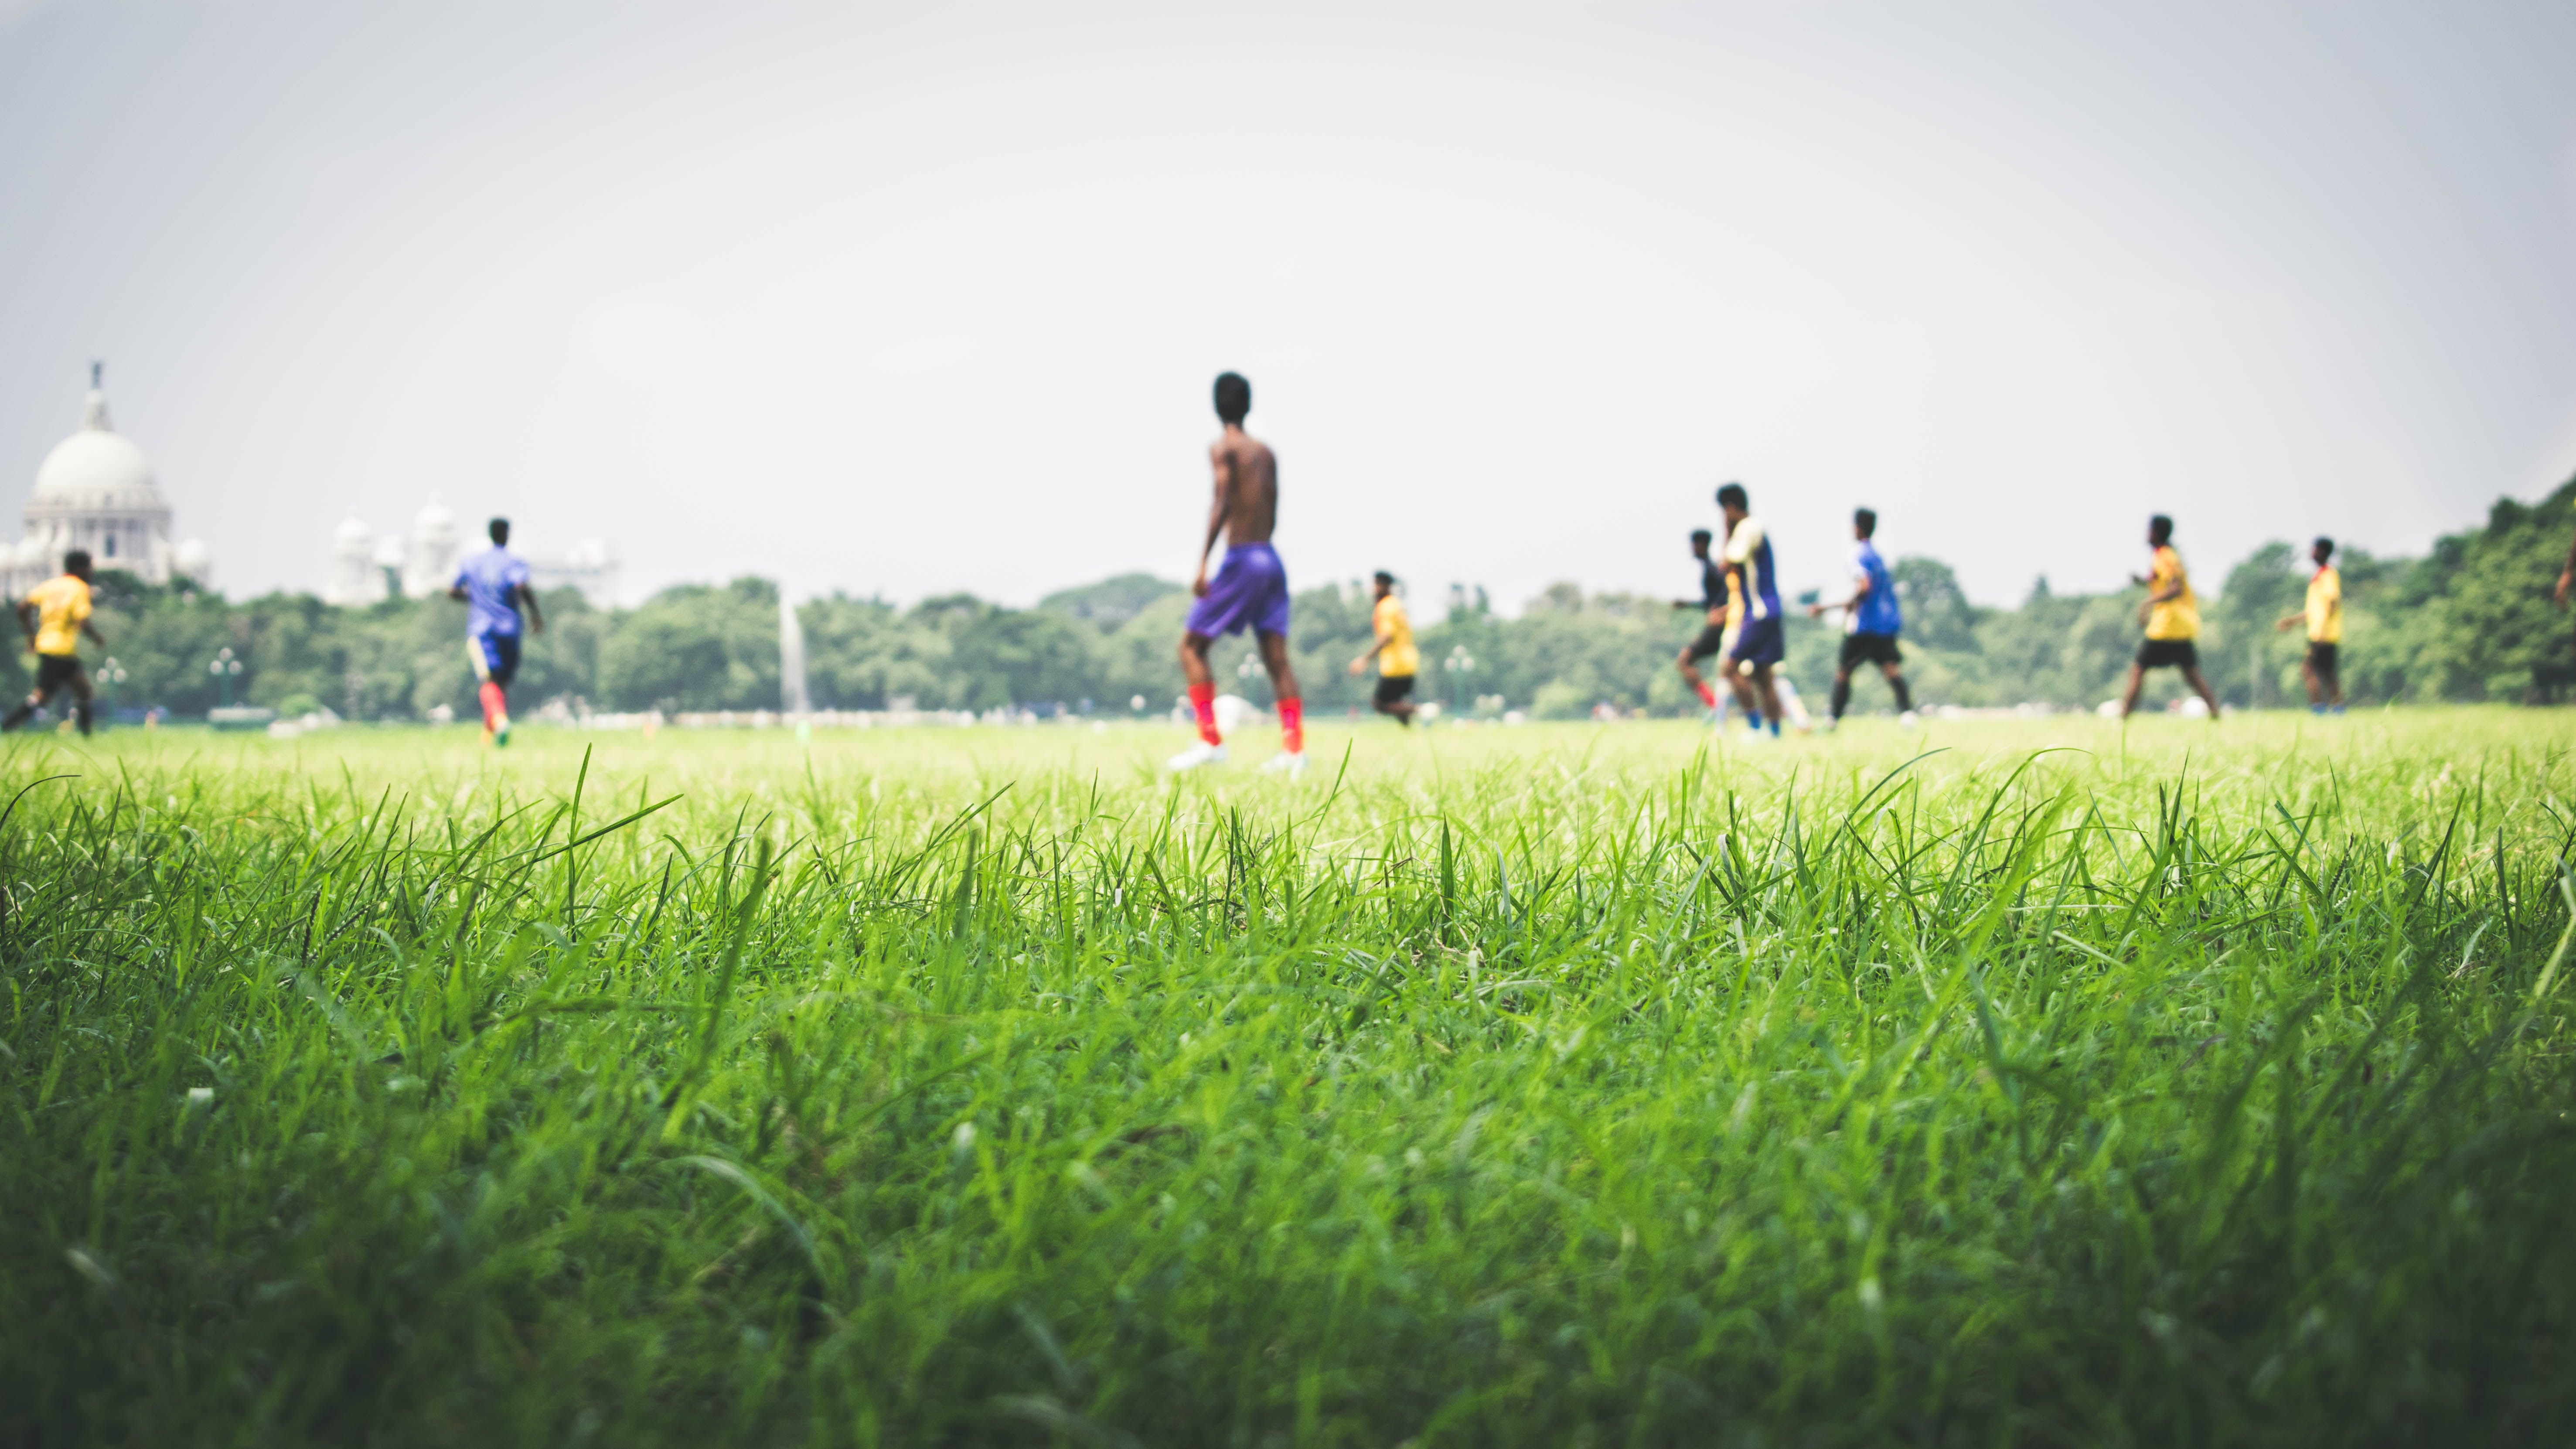 Free stock photo of nature, field, football, nature photography